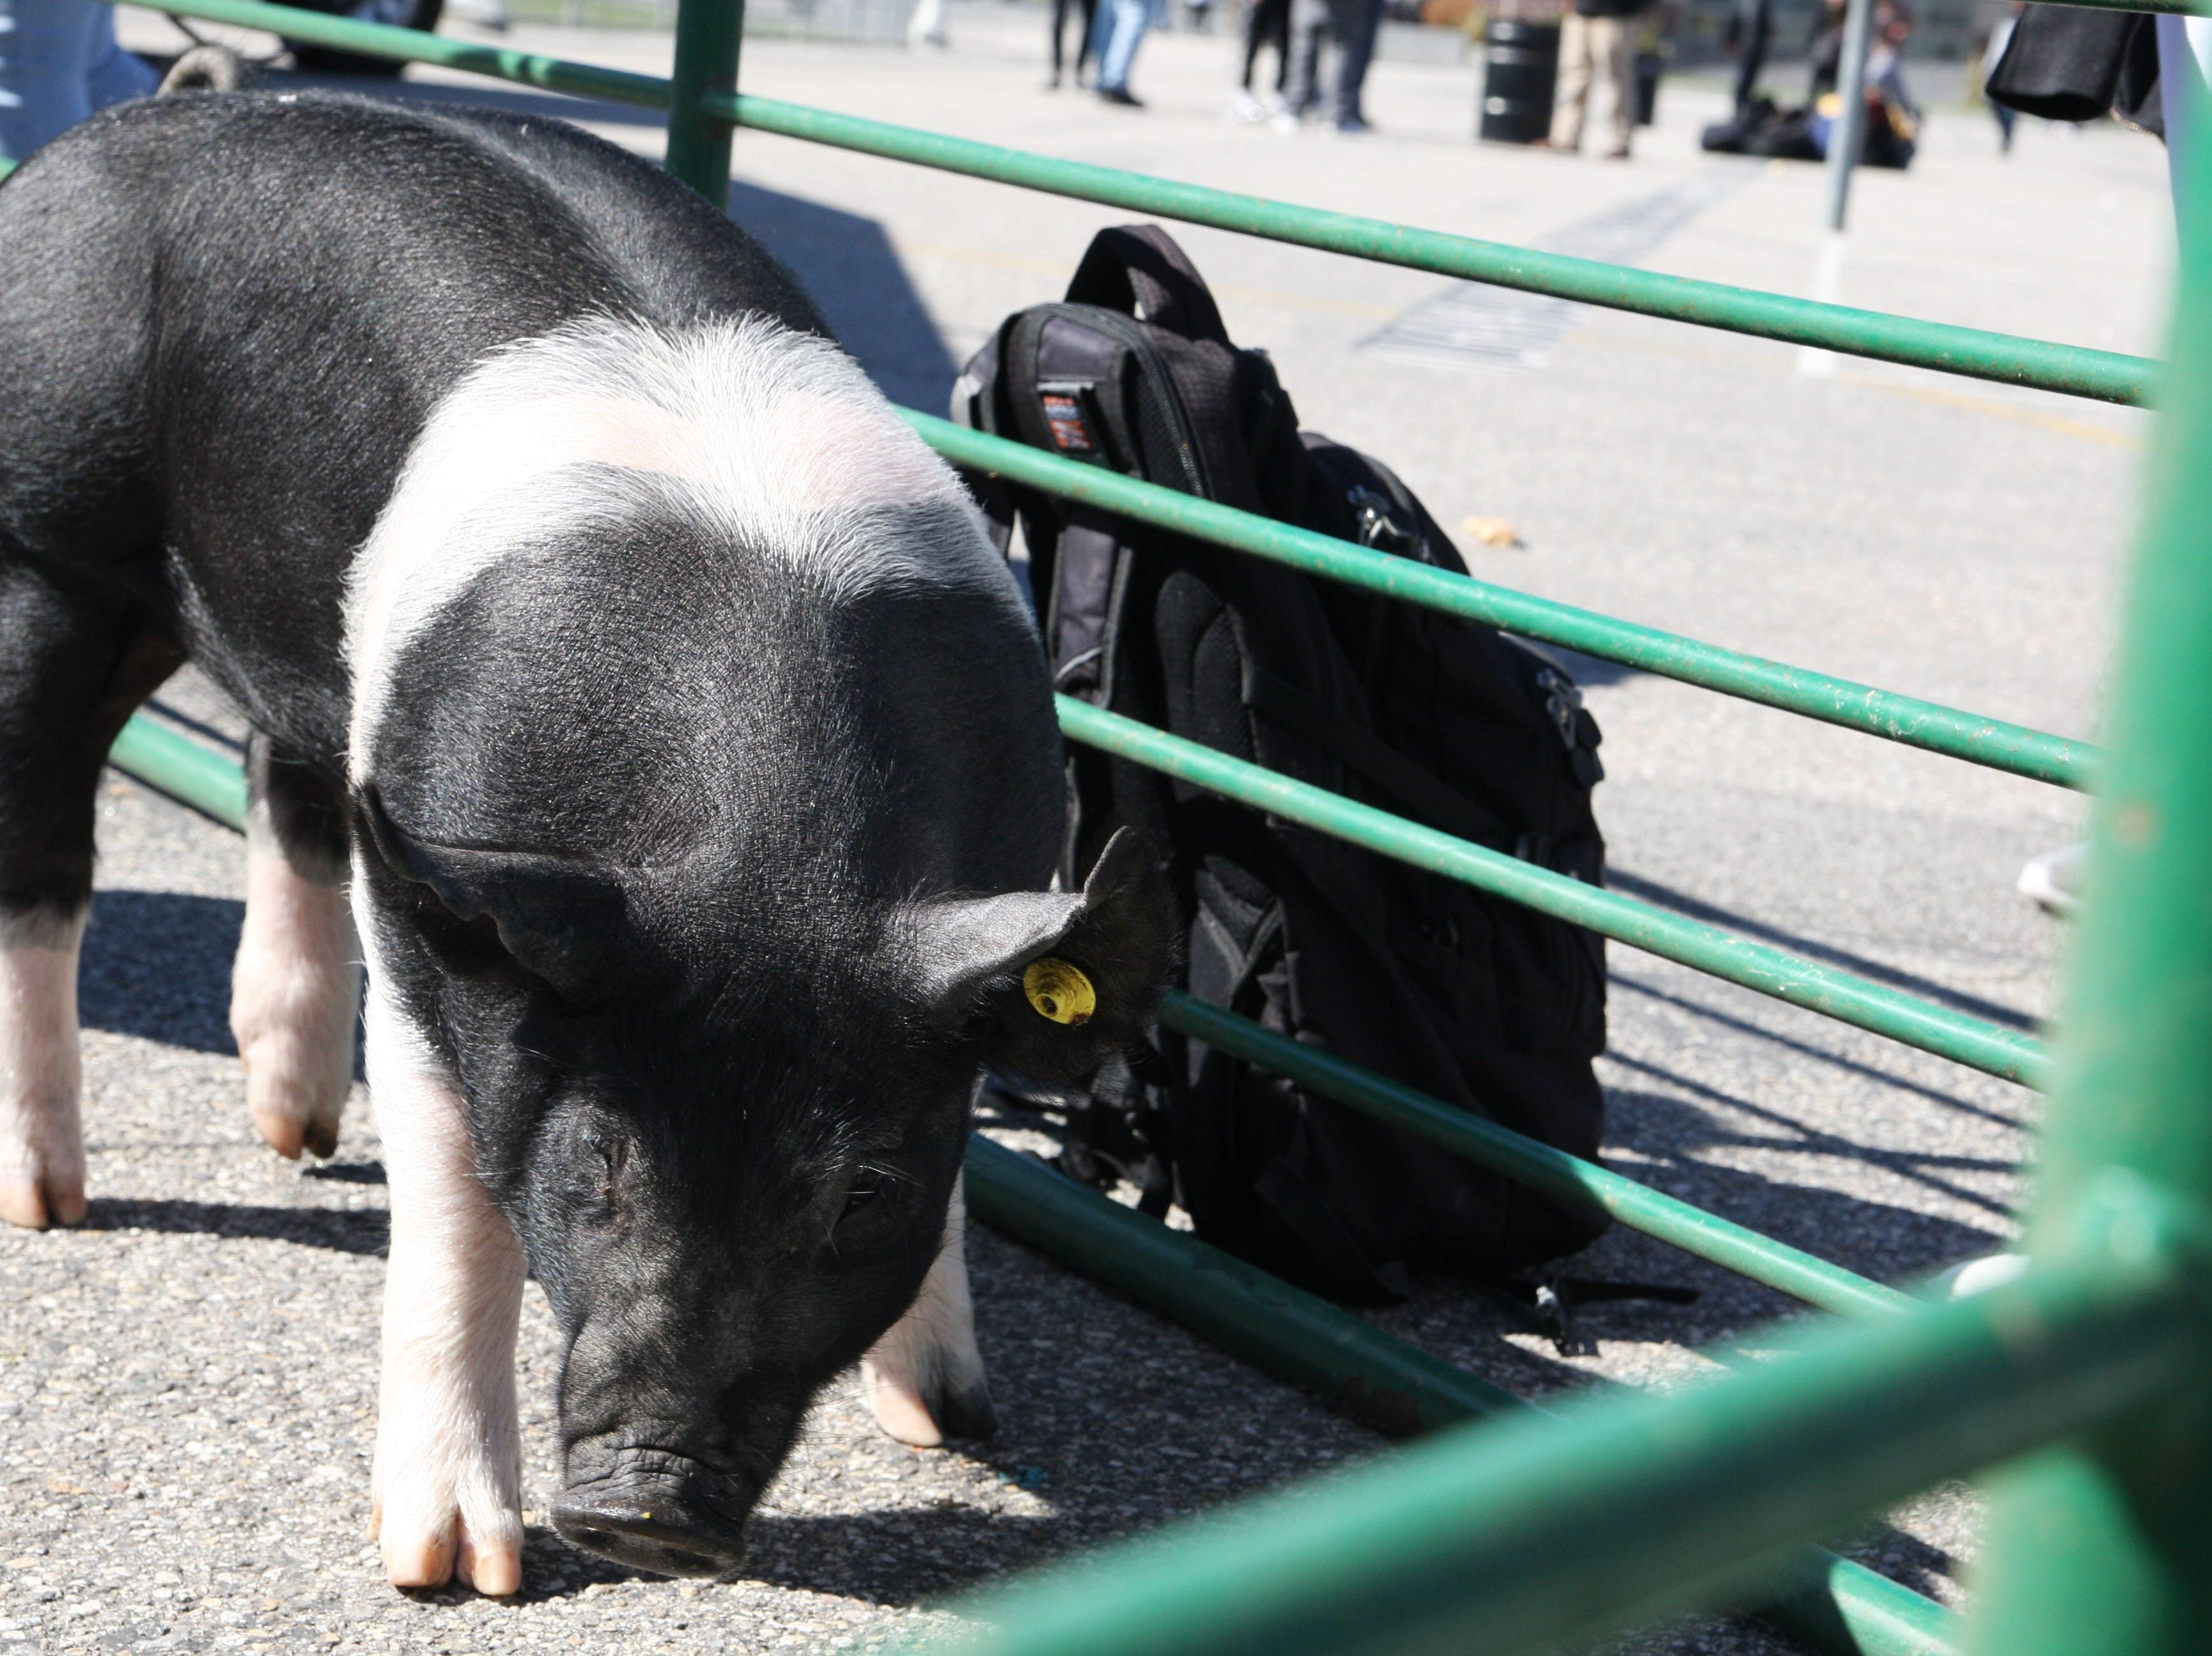 Zola the pig rubs up against the bars of the petting zoo.